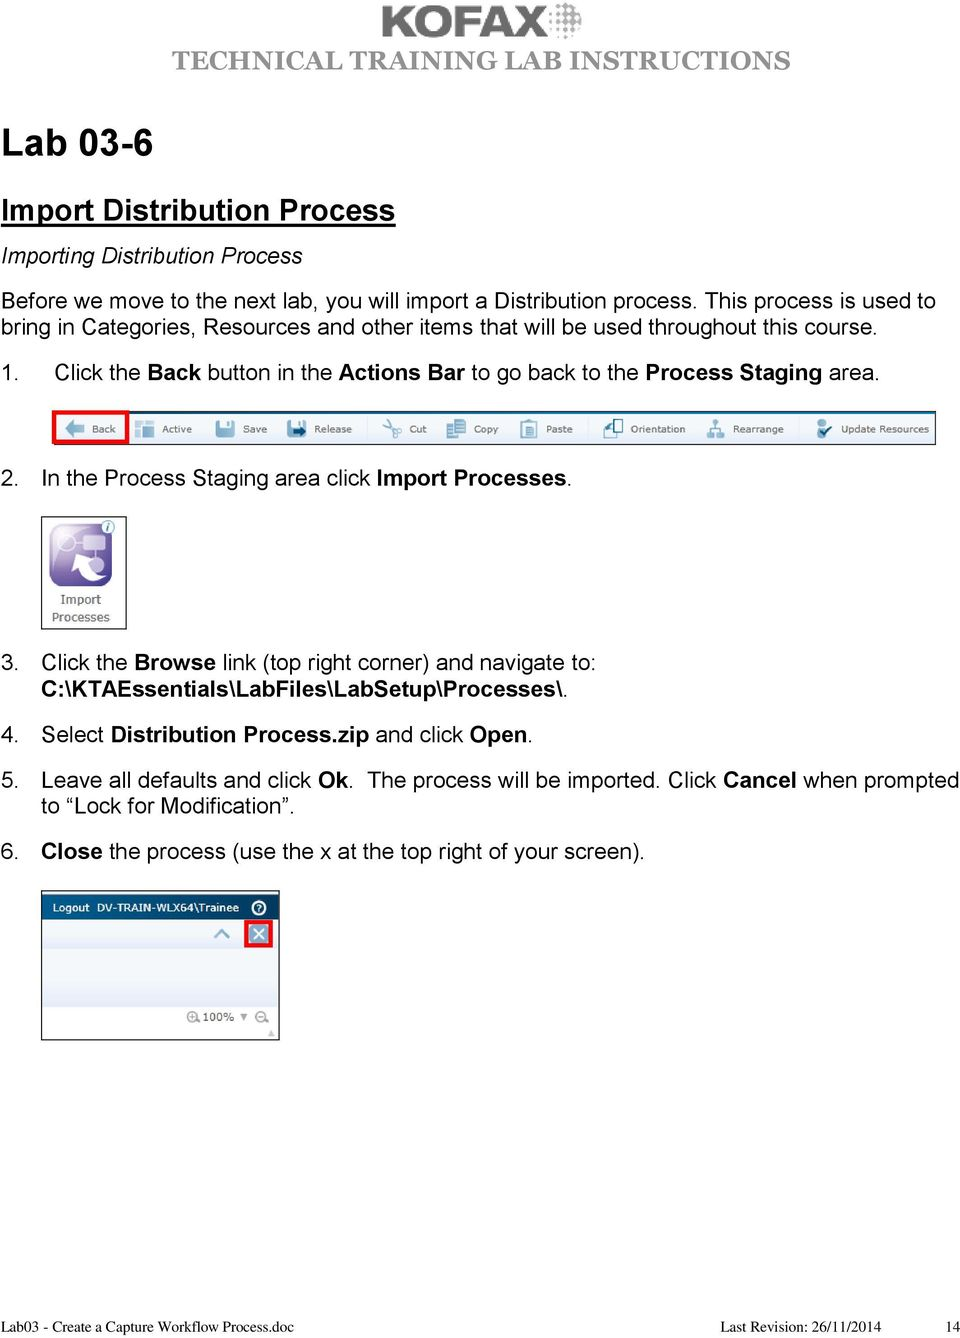 In the Process Staging area click Import Processes. 3. Click the Browse link (top right corner) and navigate to: C:\KTAEssentials\LabFiles\LabSetup\Processes\. 4. Select Distribution Process.